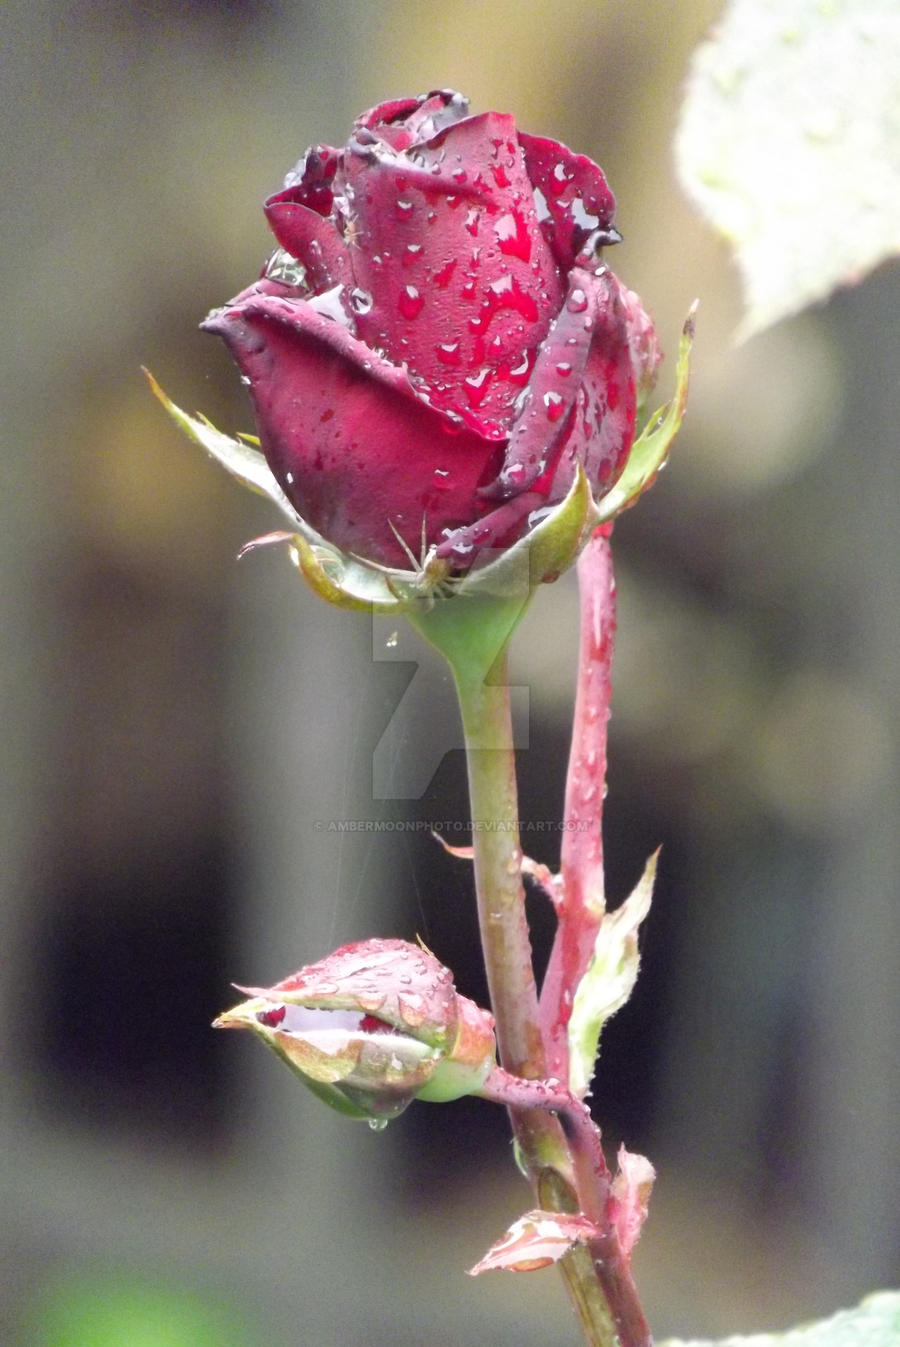 AmberMoonPhoto A Single Rose By